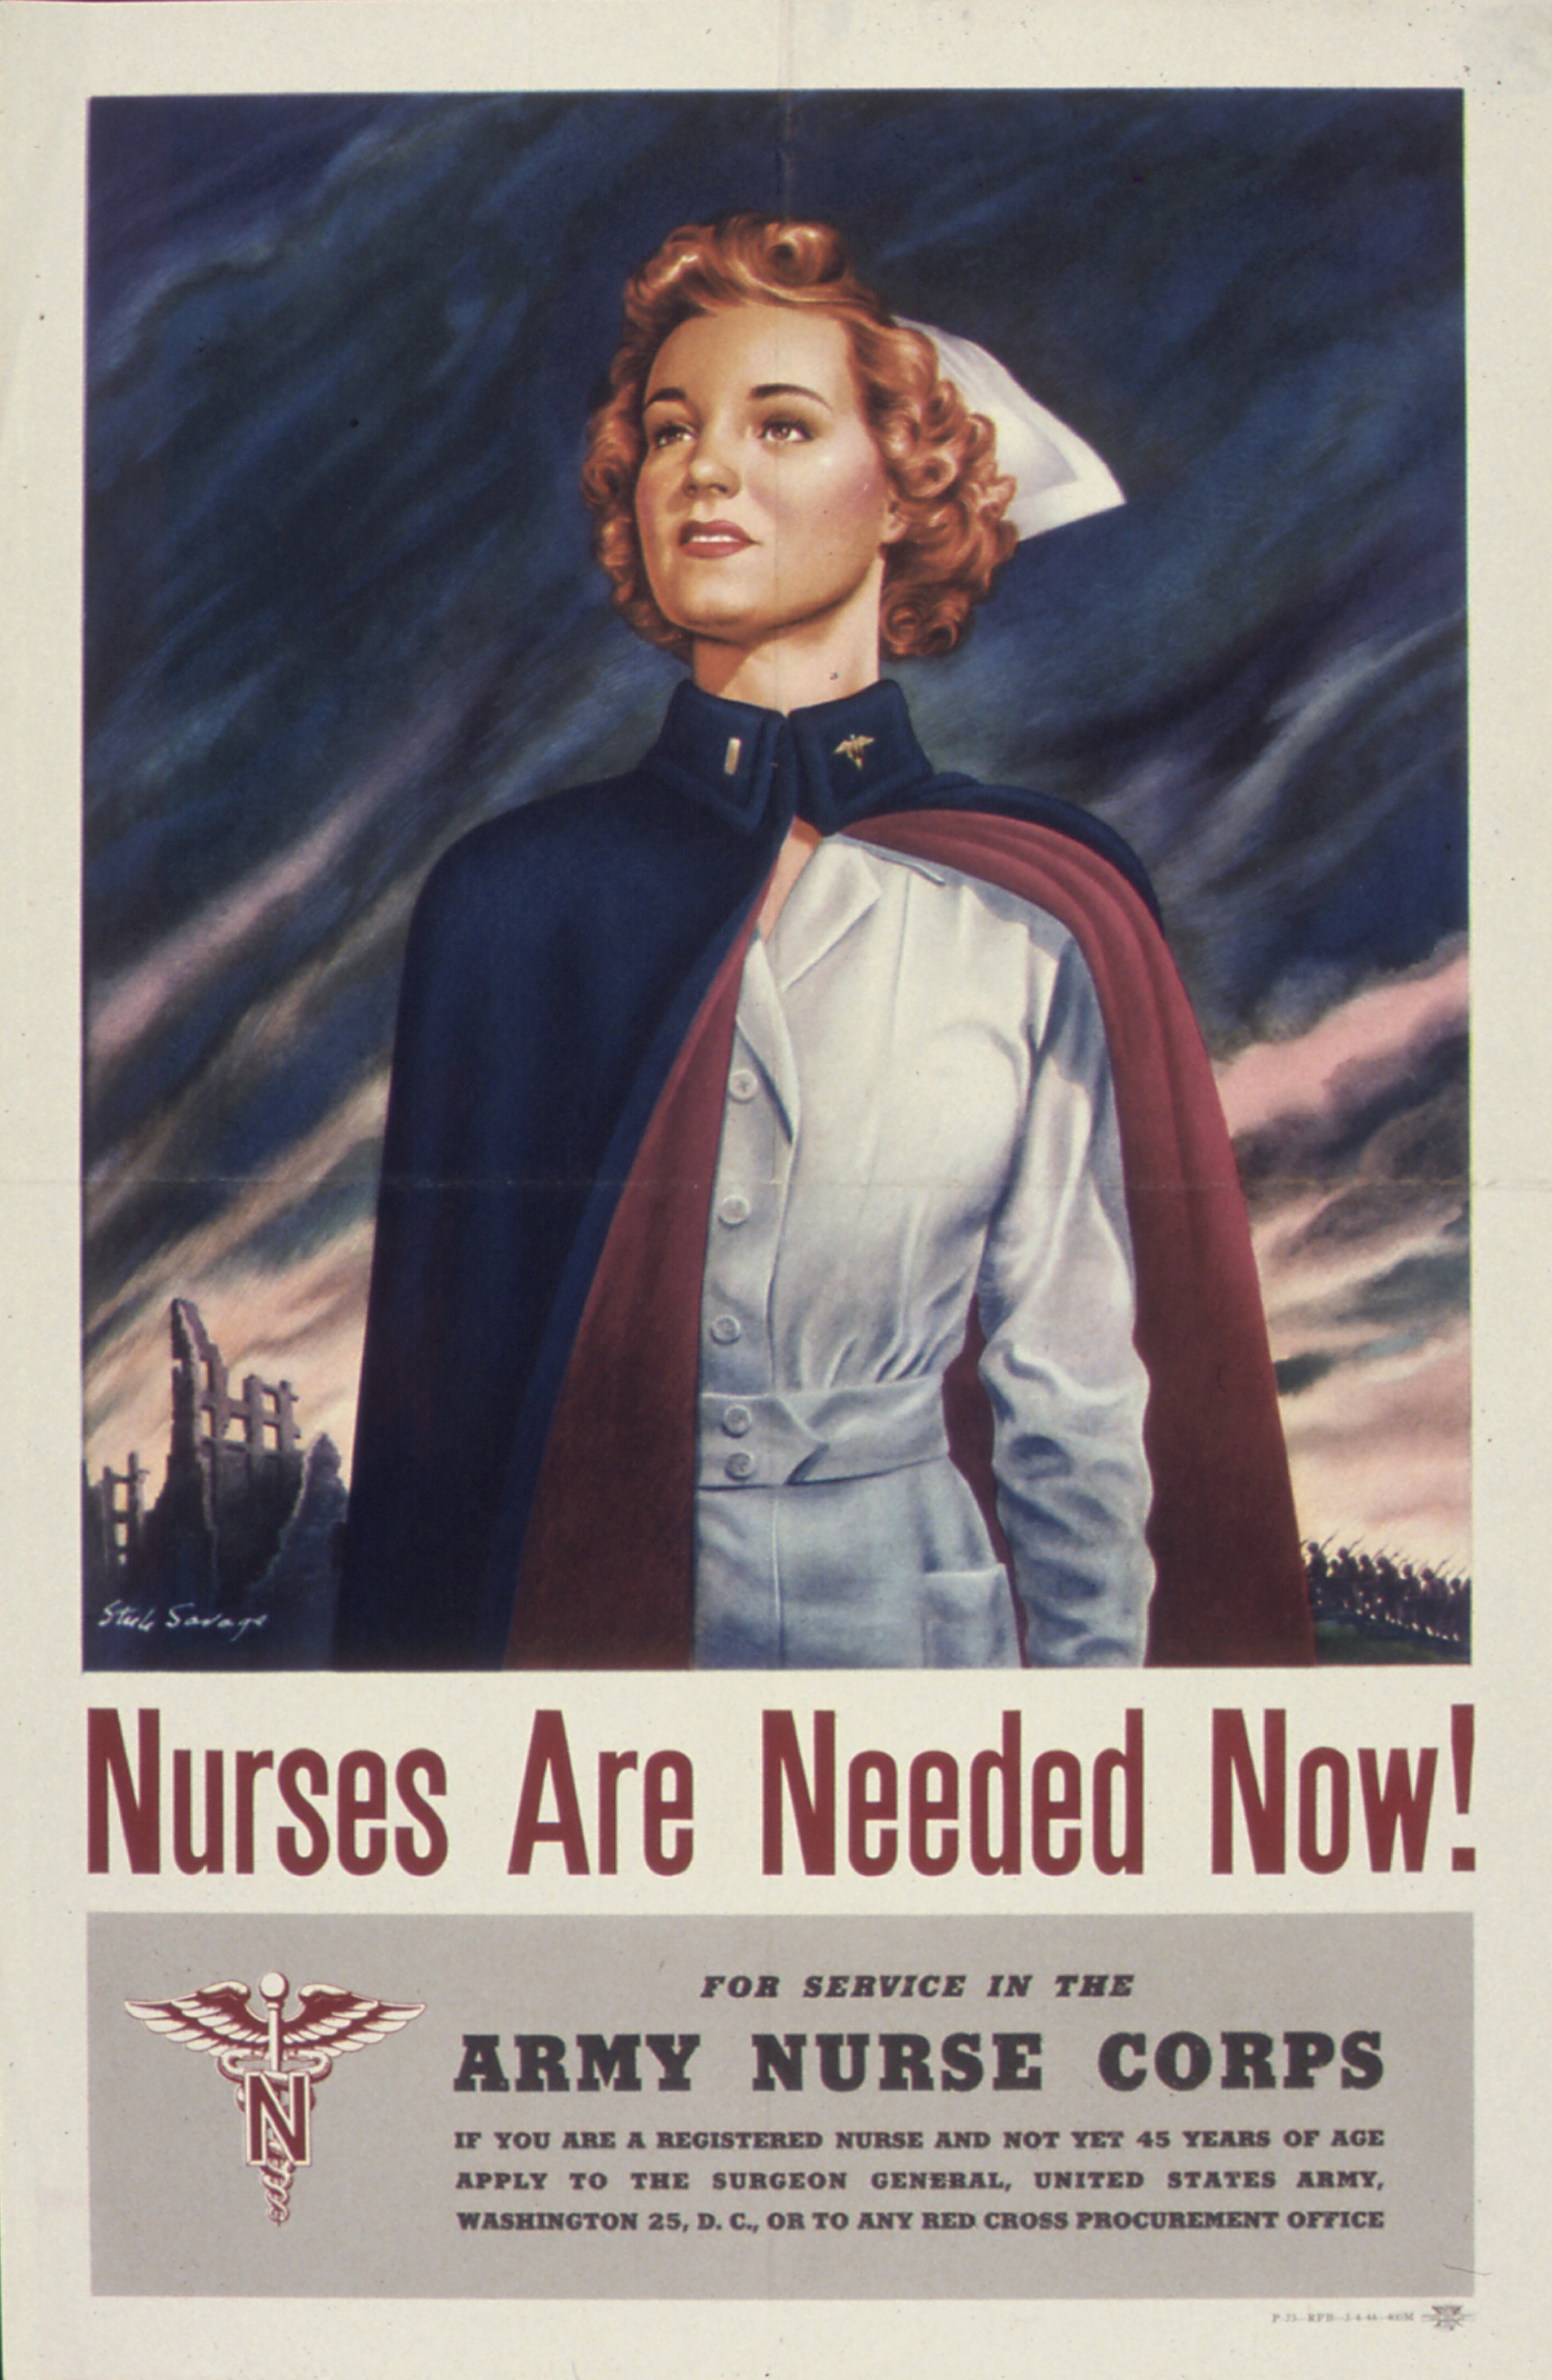 Nurses Are Needed Now! Army Nurse Corps Recruiting Poster